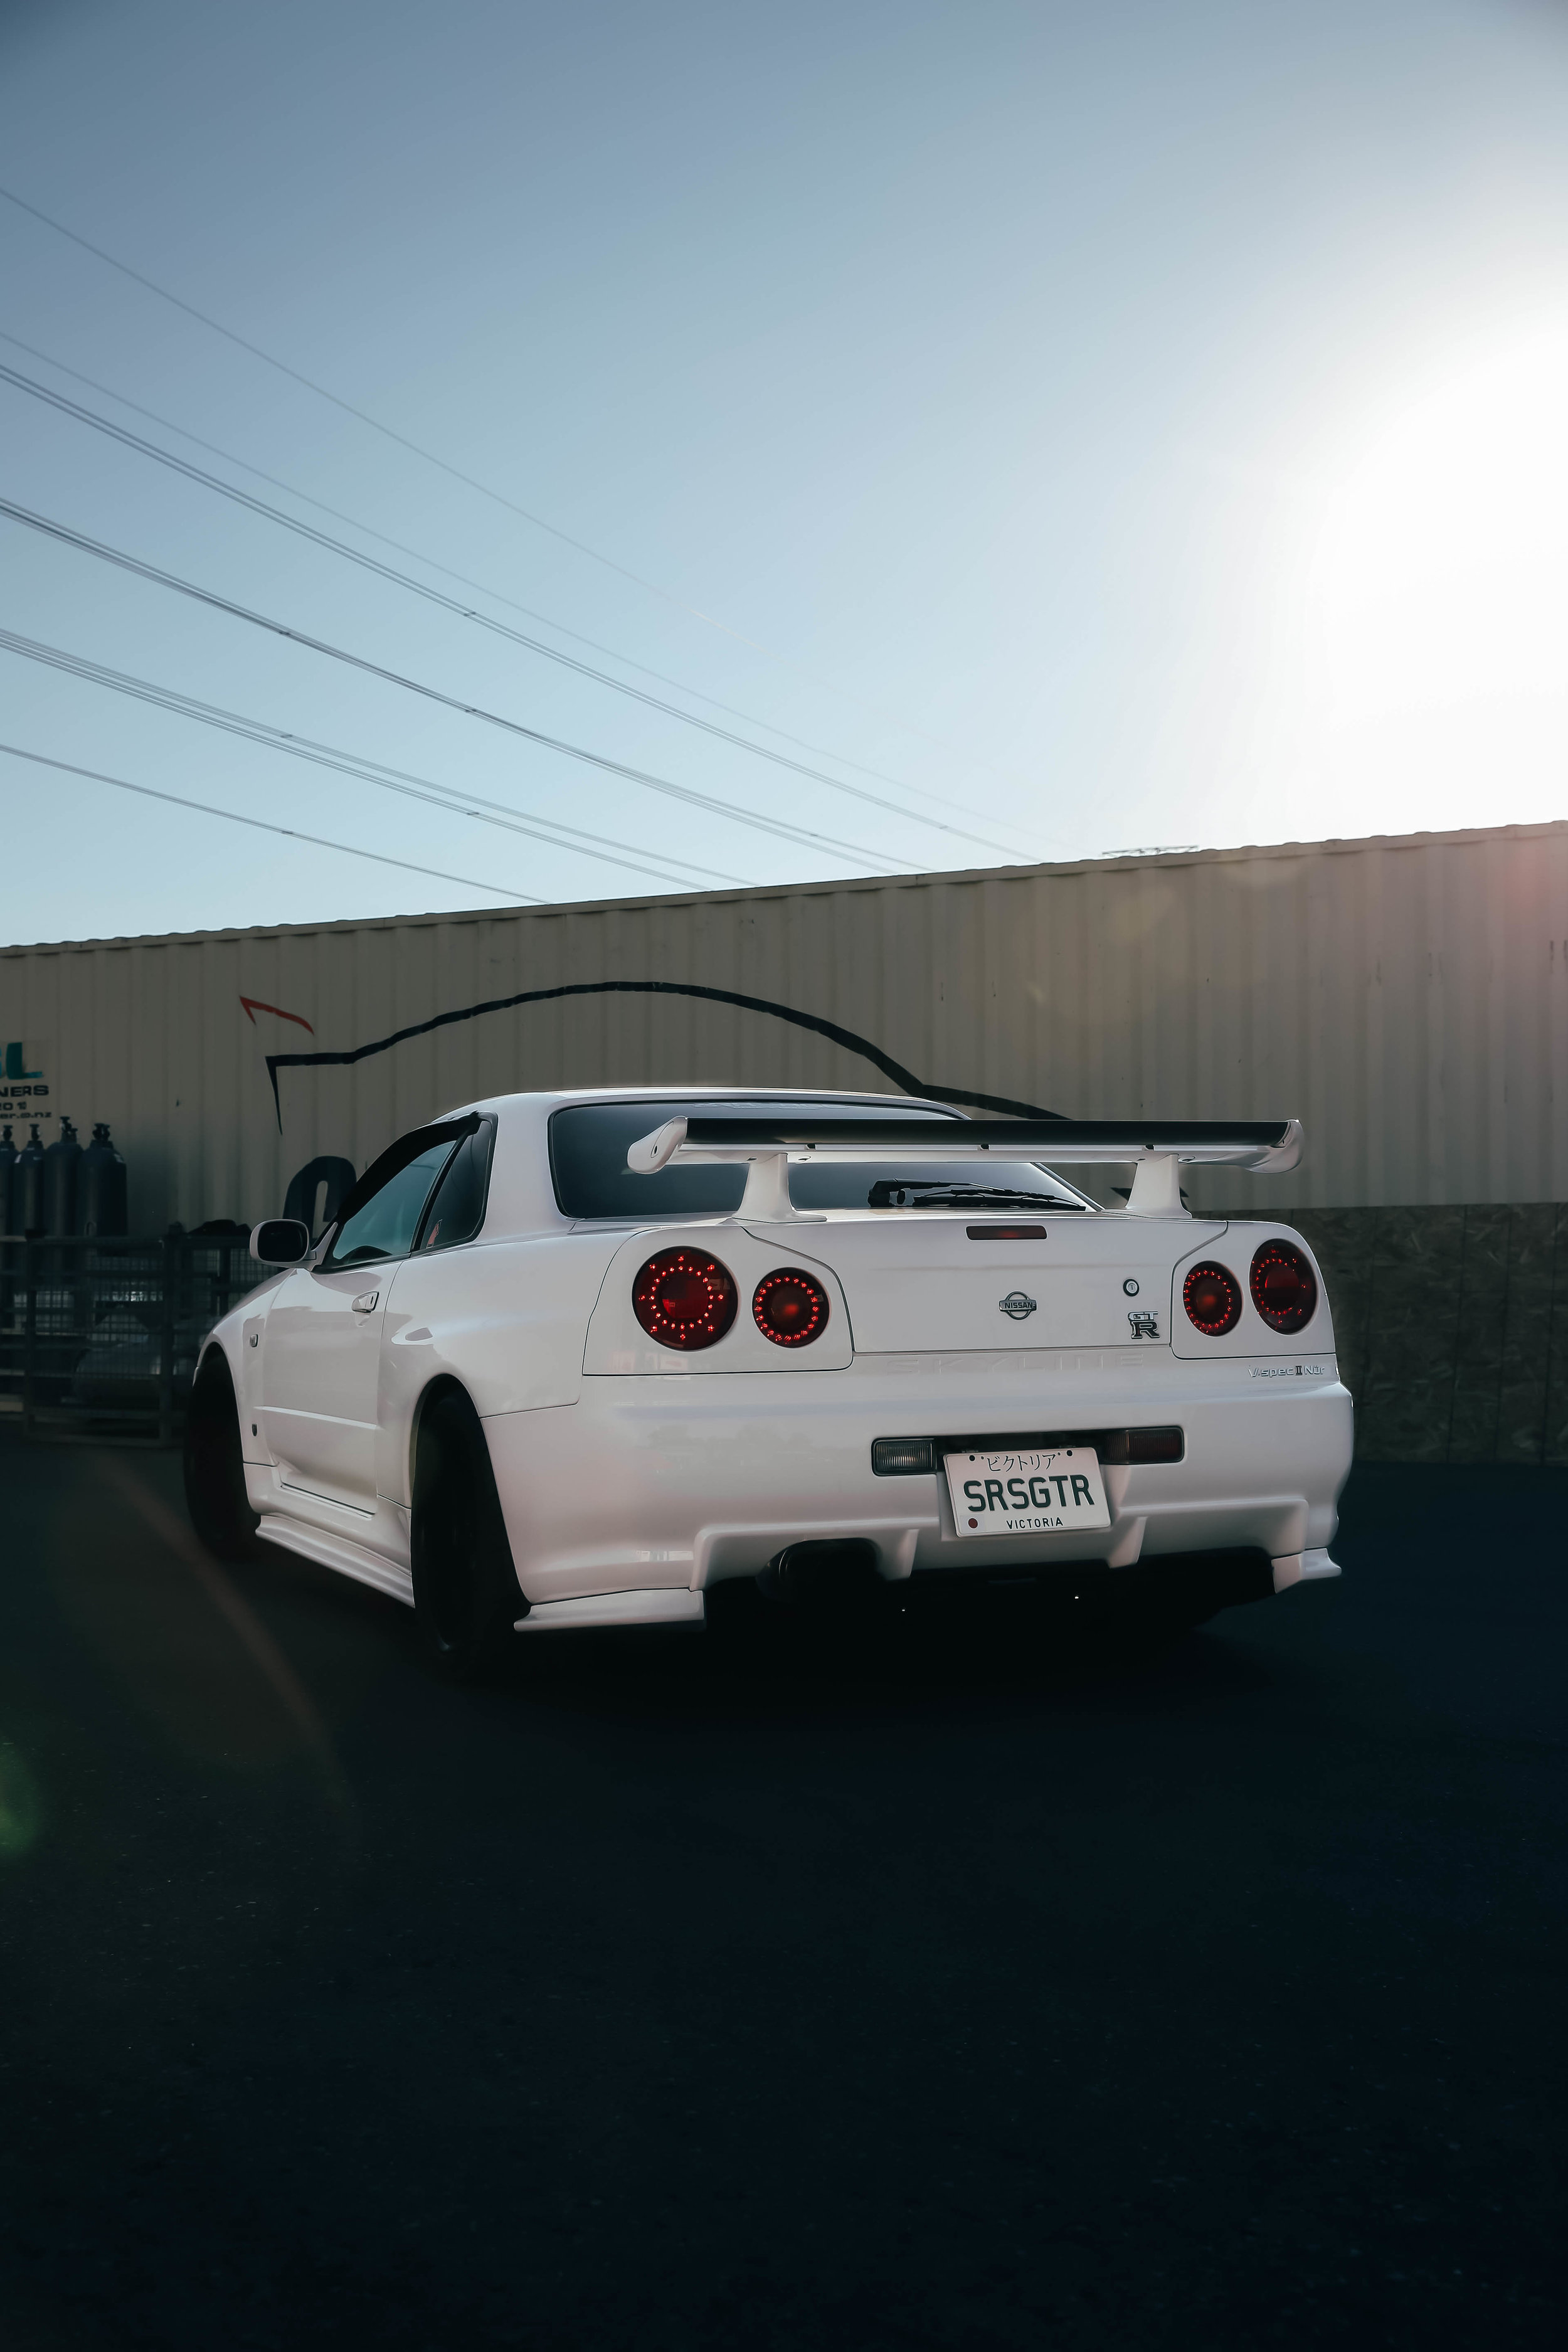 This was taken on the last day of the World Time Attack Challenge.